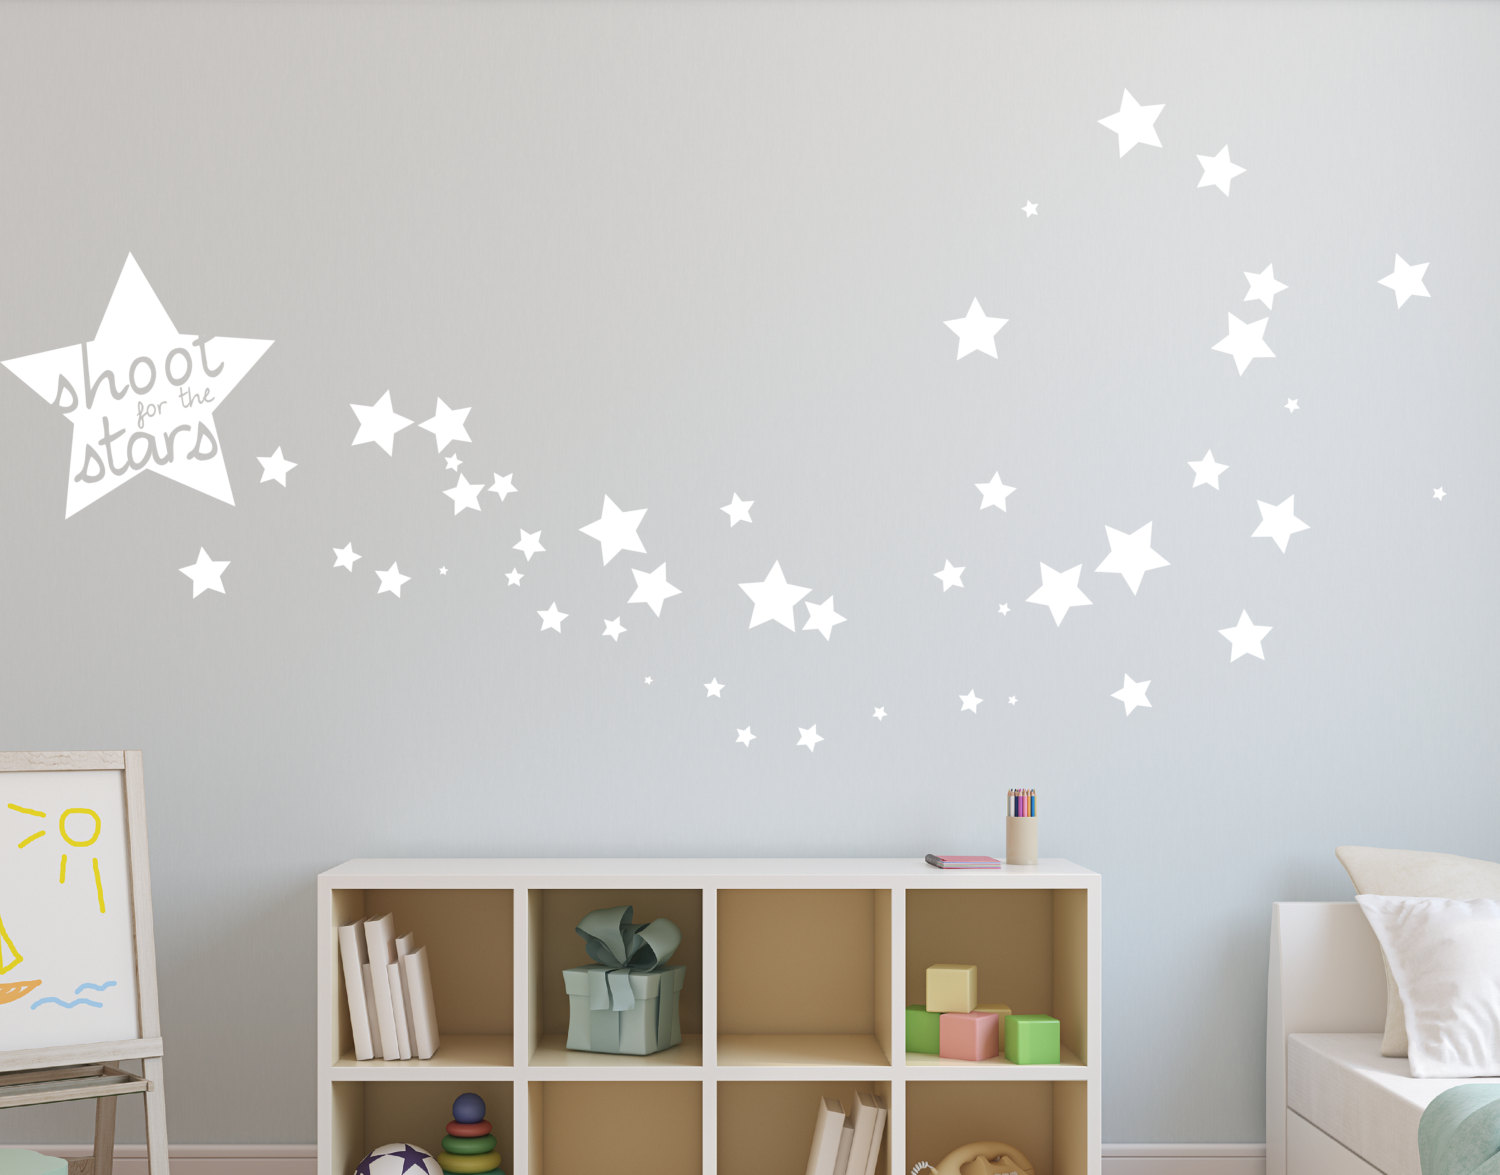 Great Home / Wall Stickers